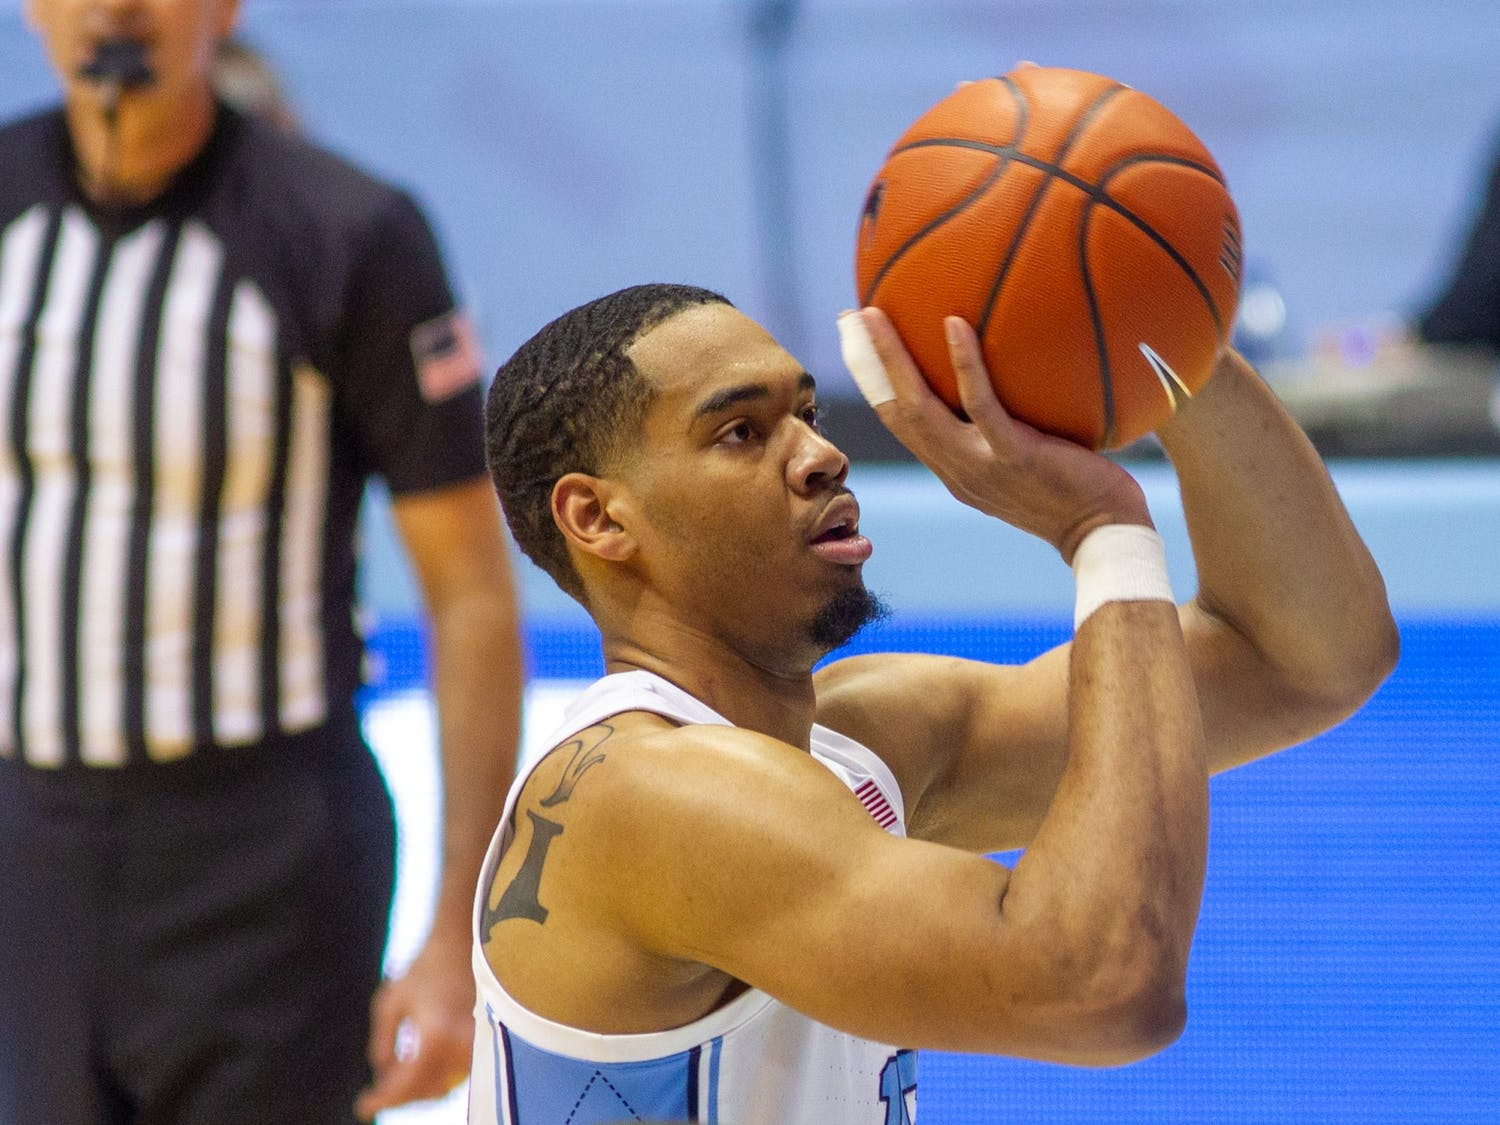 UNC senior forward Garrison Brooks shoots a free throw  at the game against Louisville on Saturday, Feb. 20 2021 at the Smith Center in Chapel Hill. UNC won 99-54.